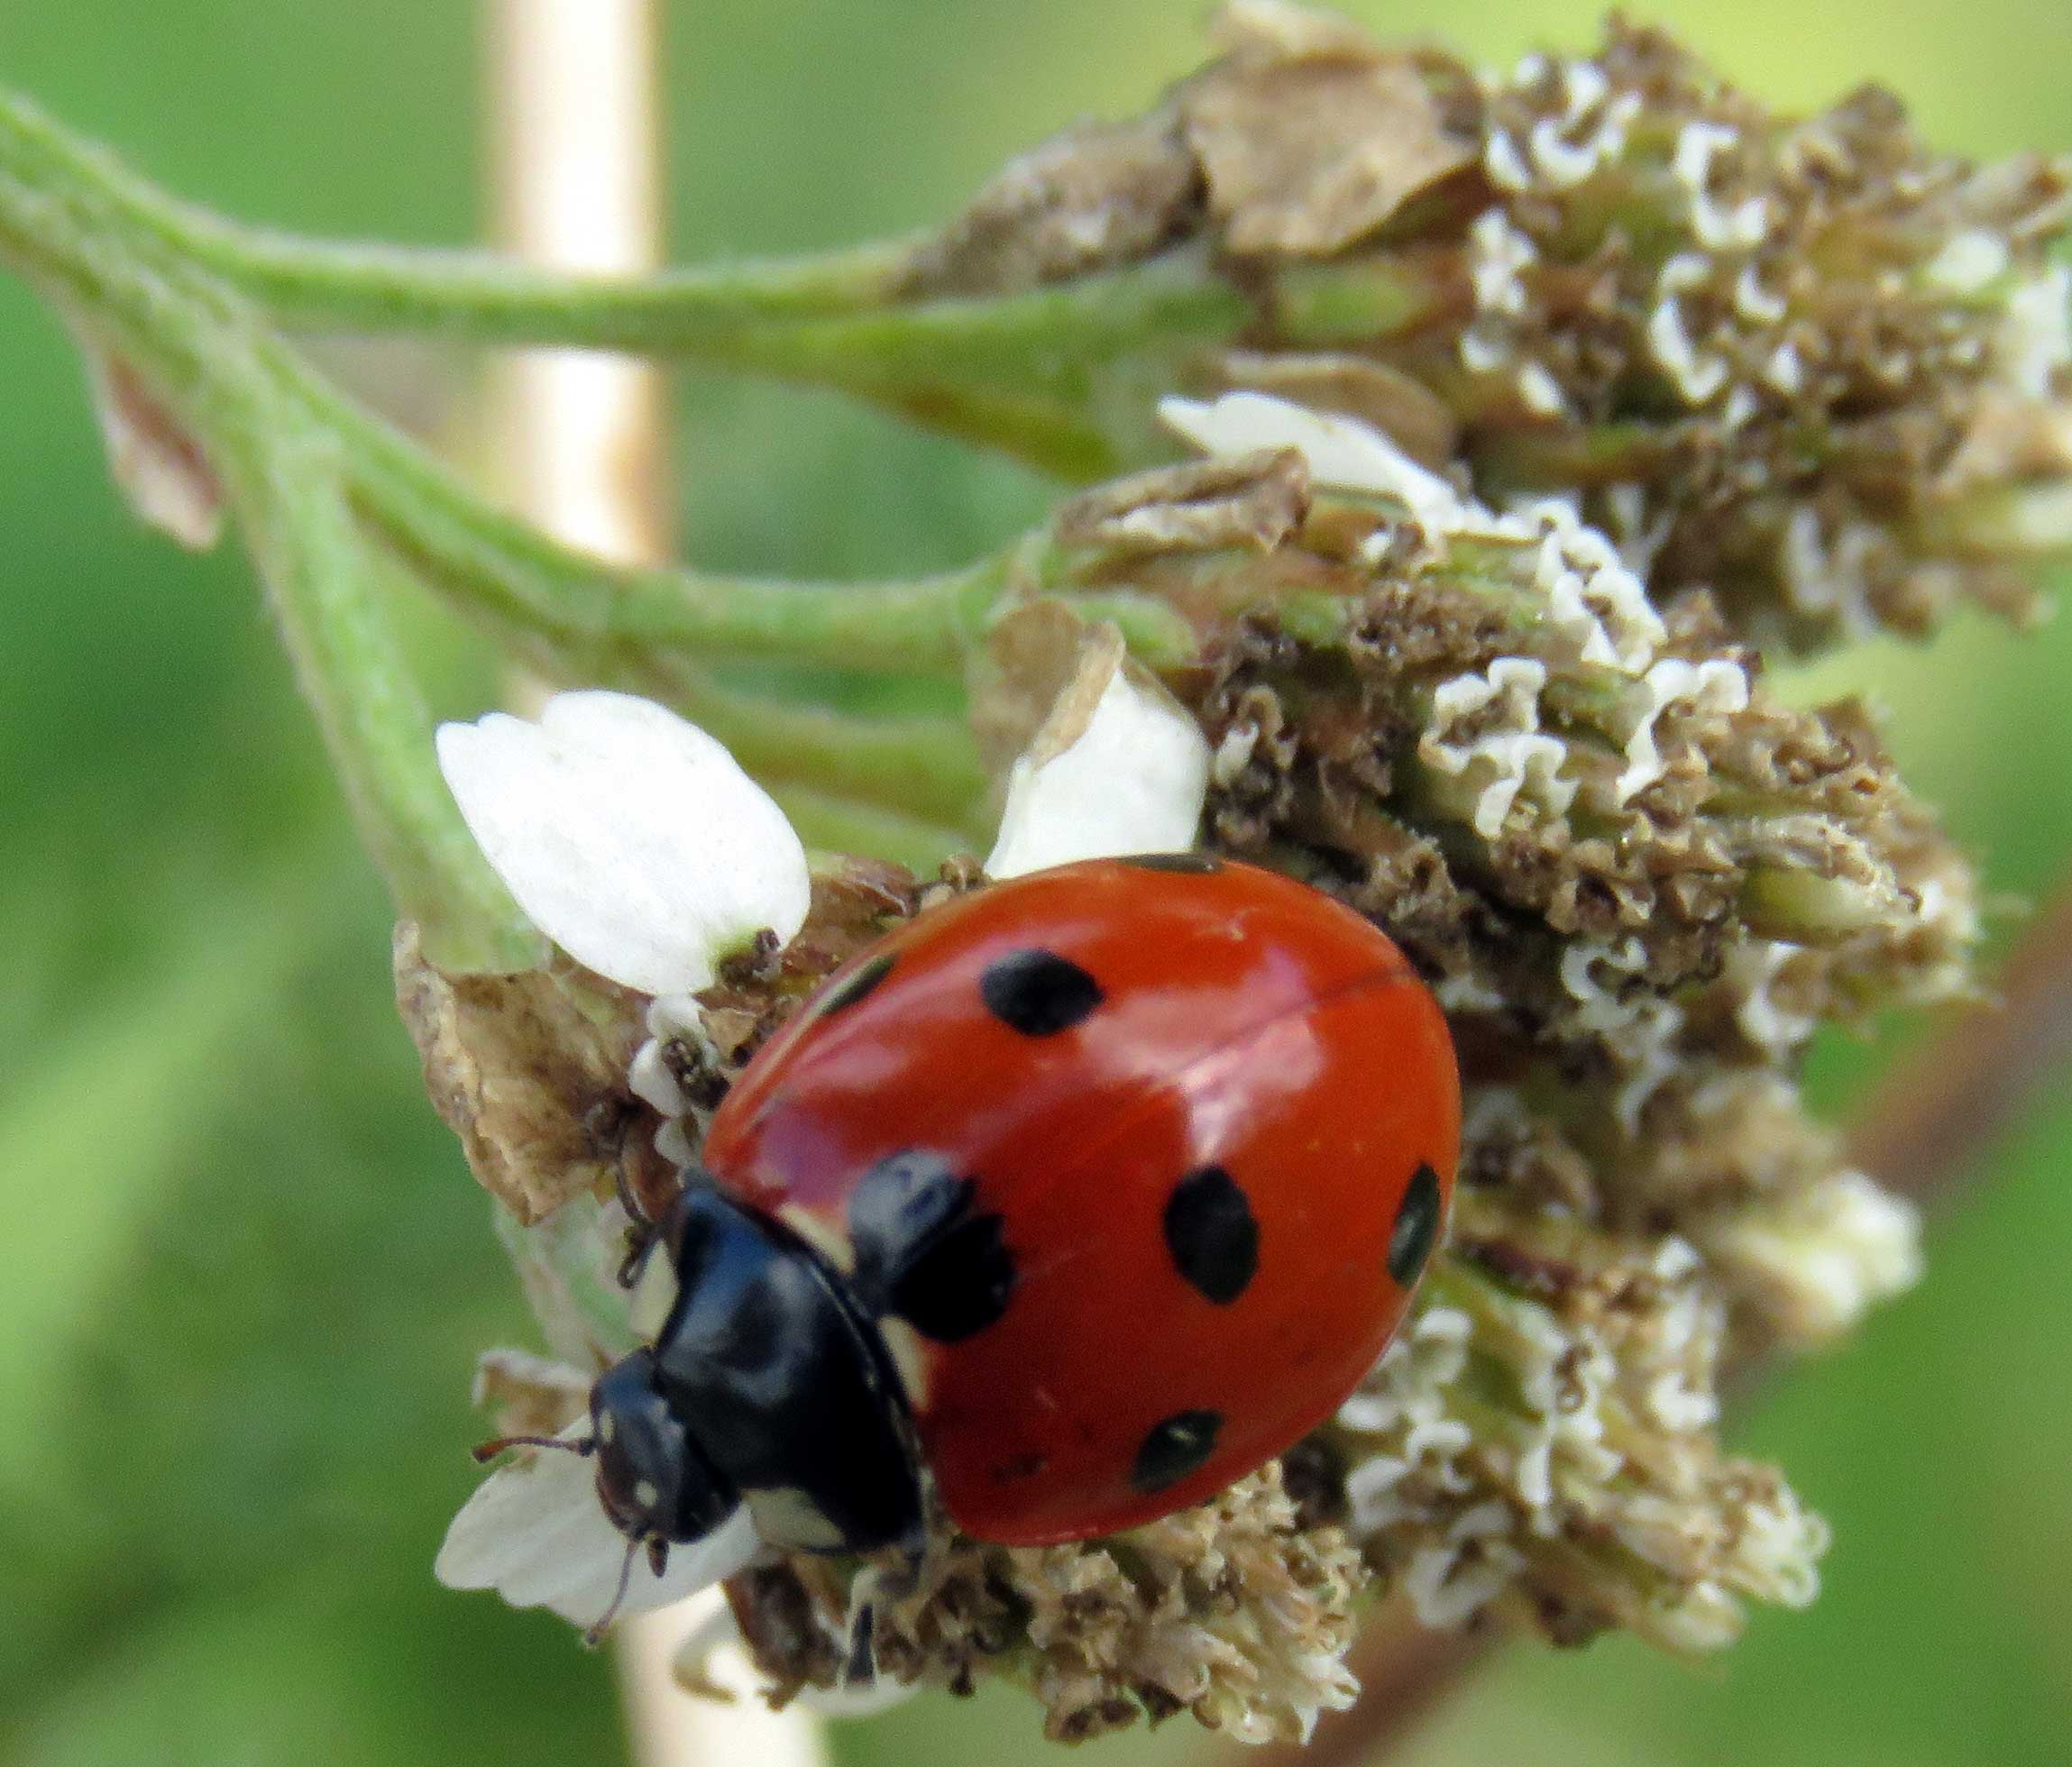 2 October 2016 7 Spot Ladybird Coccinella Septempunctata On Yarrow The Downs Link Cyclepath At Old Shoreham Its Own